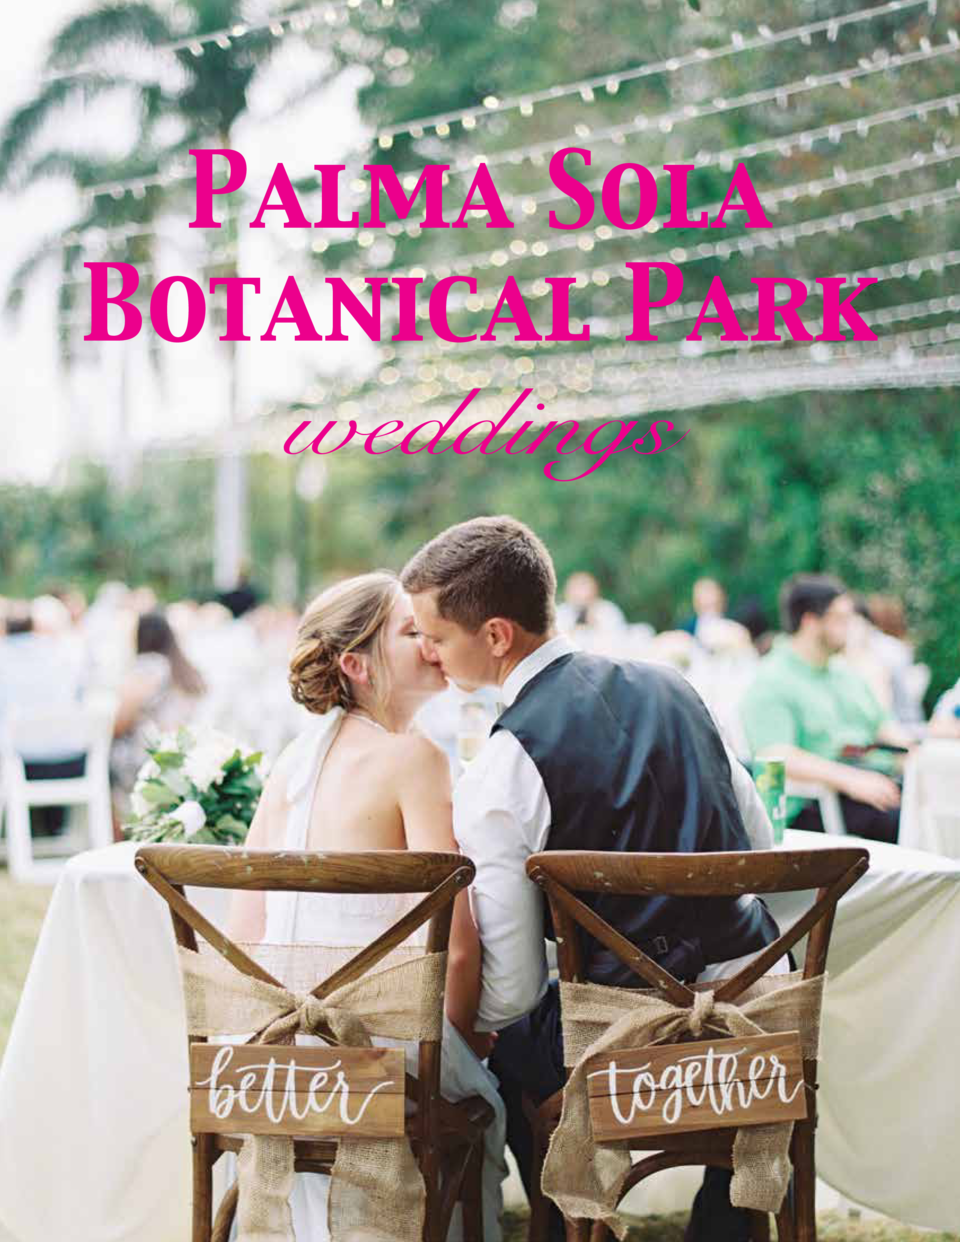 Palma Sola Botanical Park weddings